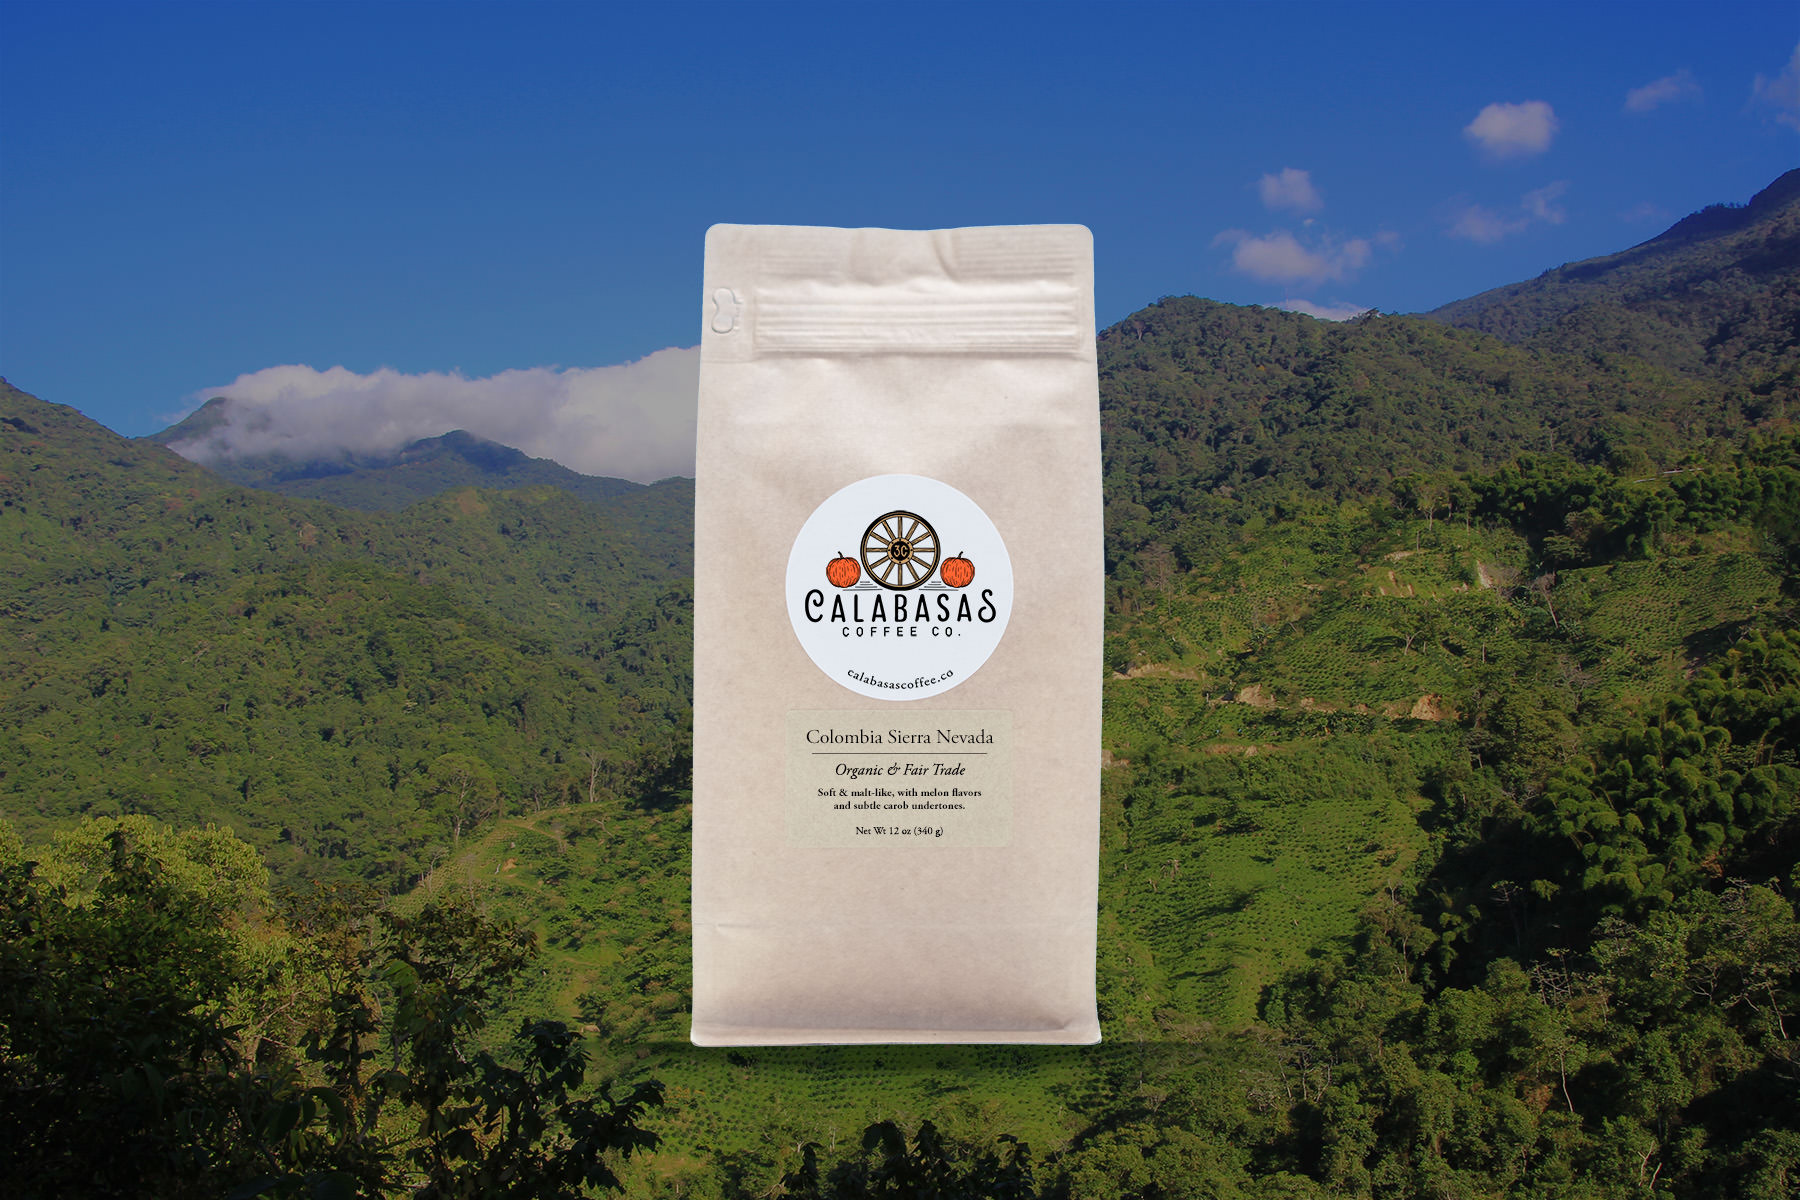 Colombia Sierra Nevada - A smooth operator. Soft and malt-like, with melon undertones.